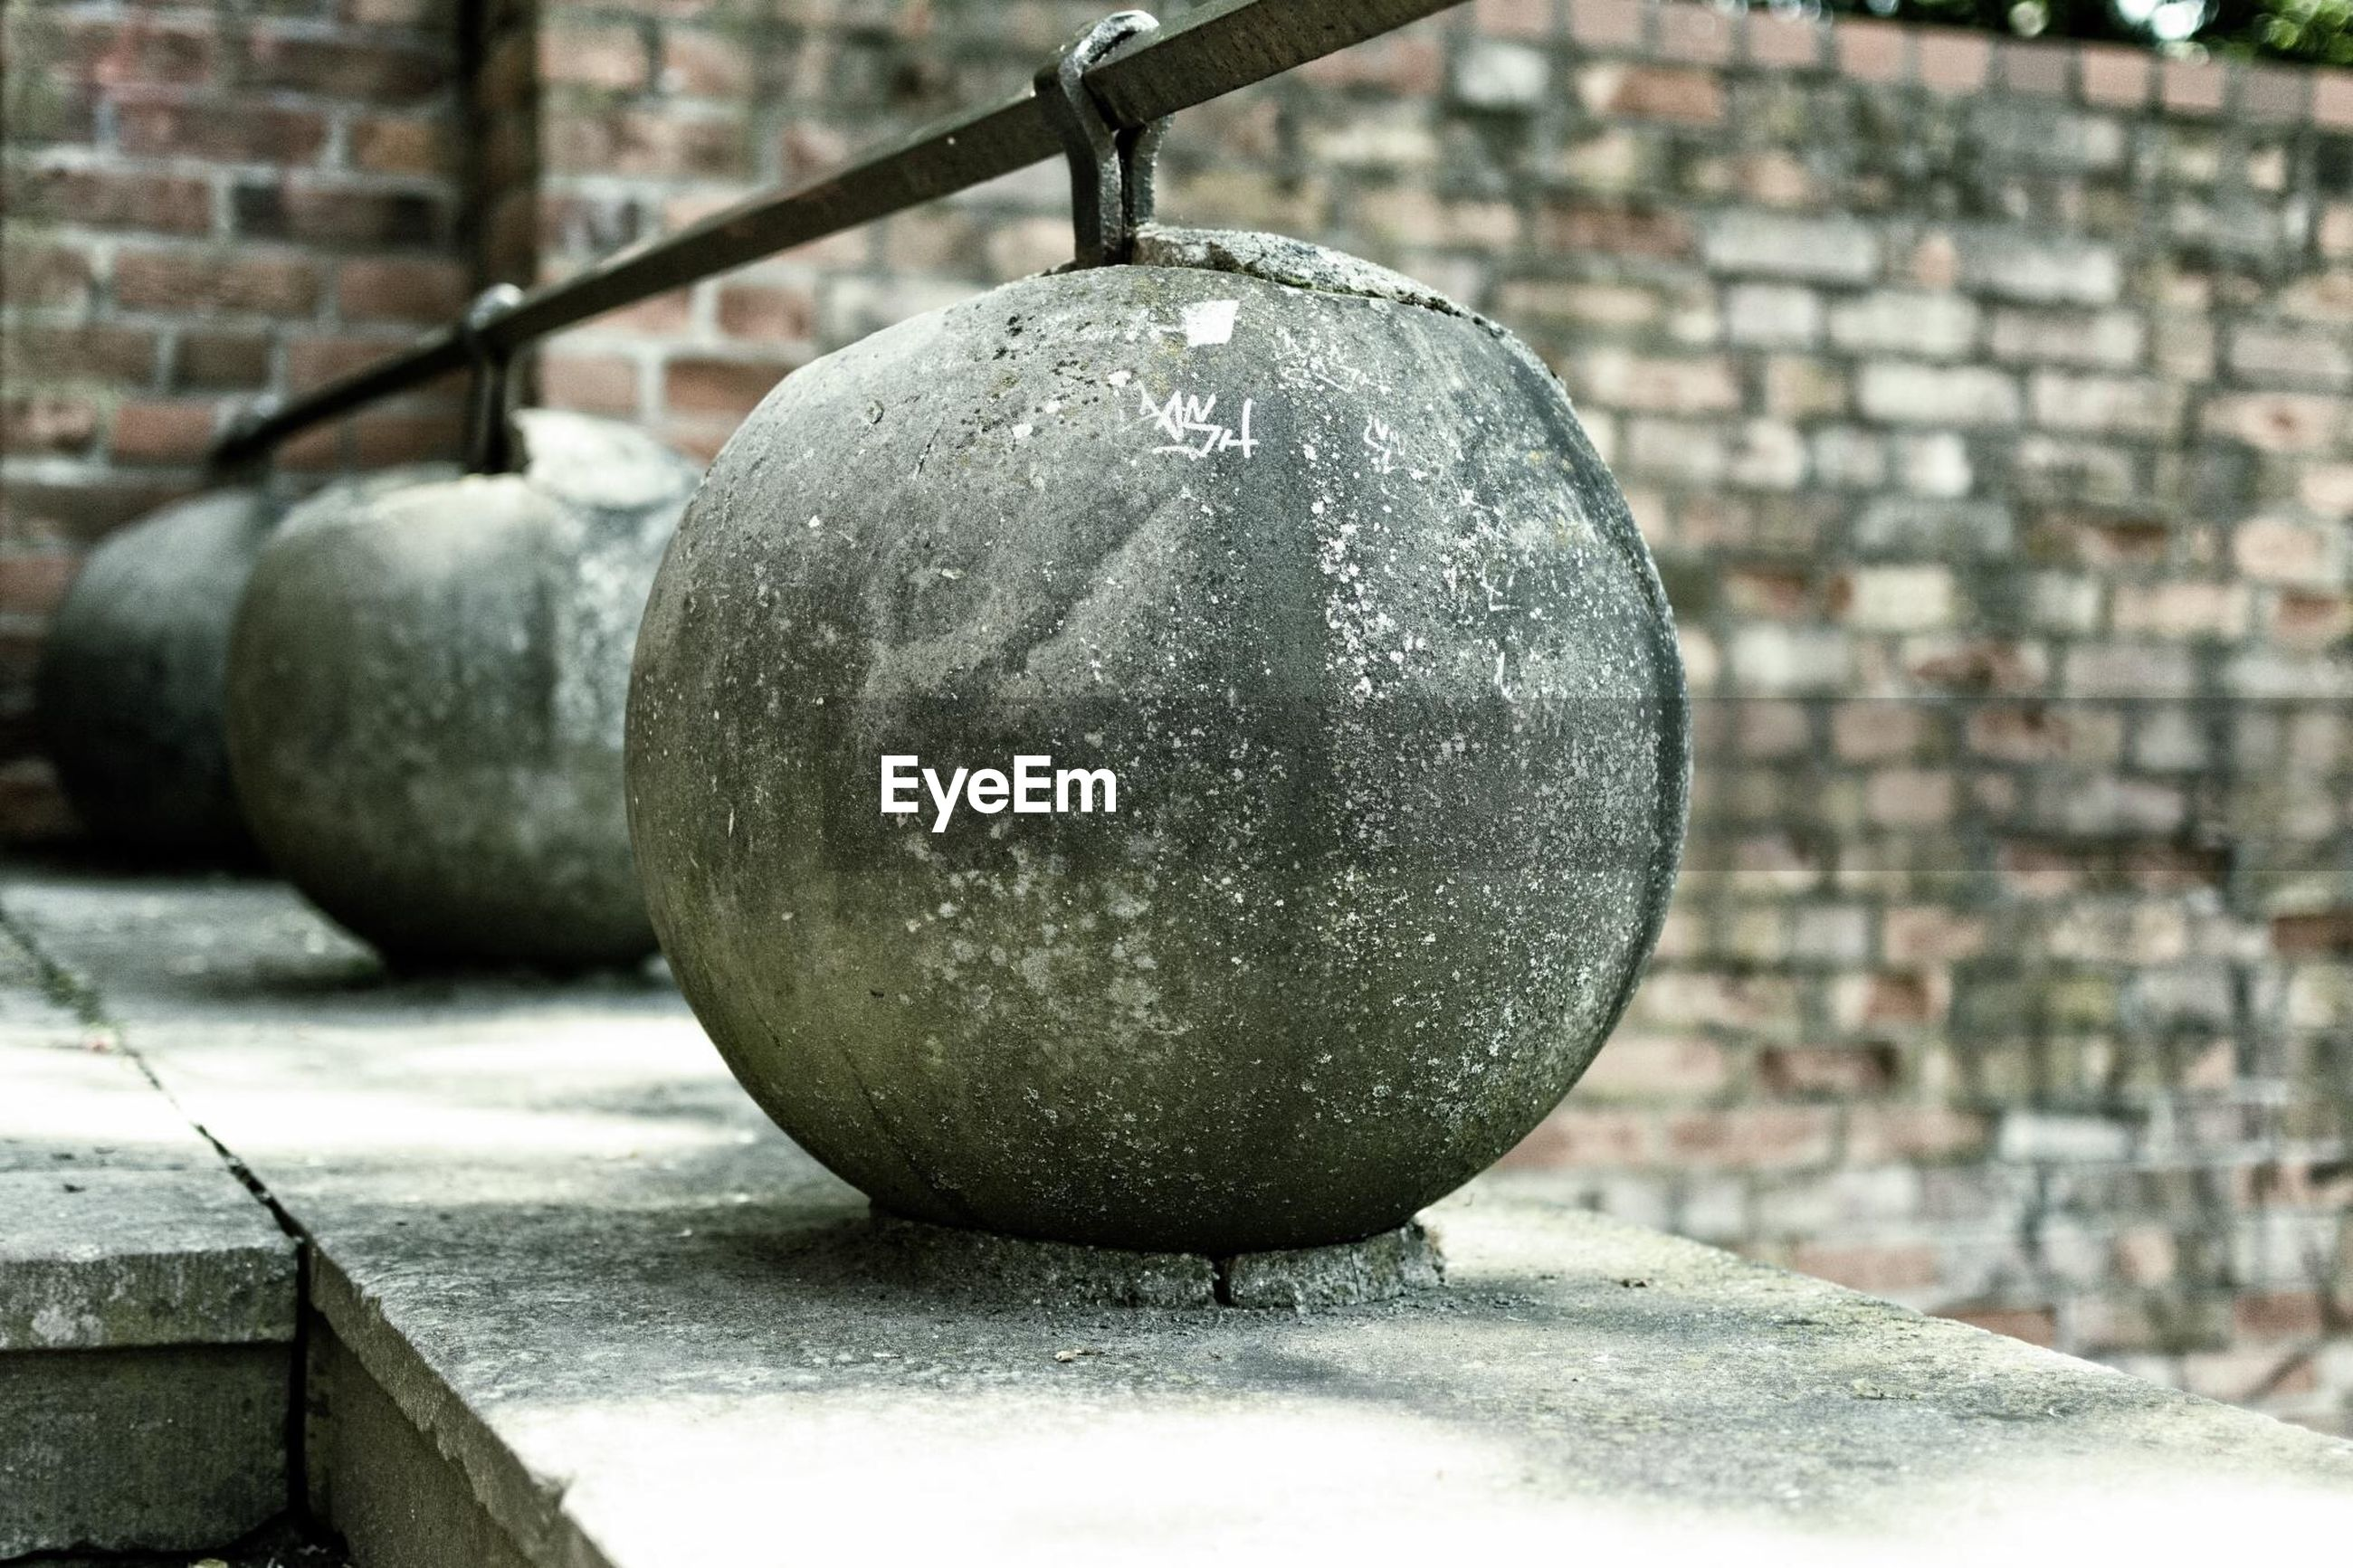 close-up, focus on foreground, metal, still life, day, hanging, built structure, outdoors, no people, sphere, fruit, wall - building feature, sunlight, architecture, metallic, old, container, stone - object, stack